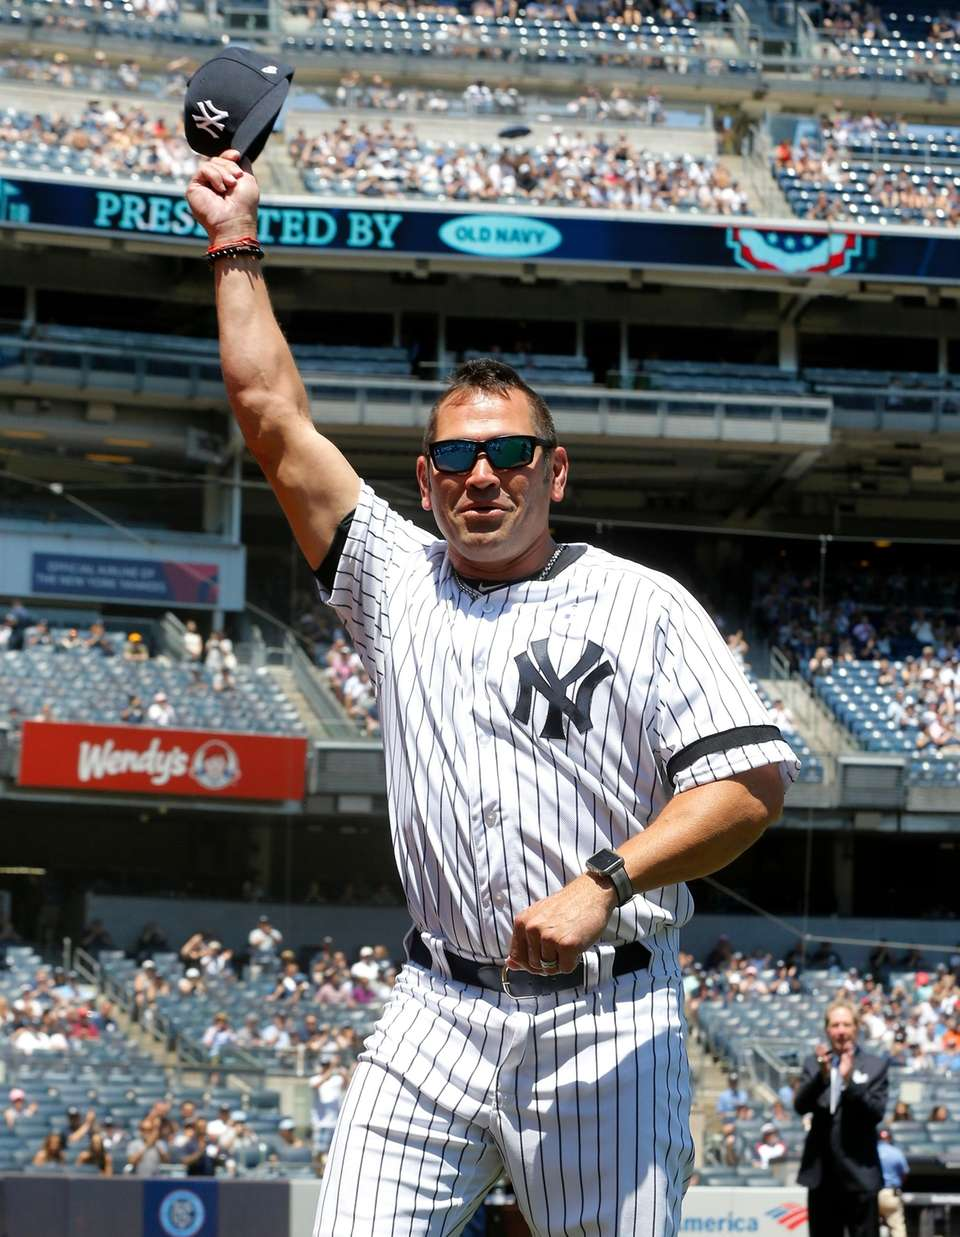 Johnny Damon during Old-Timers' Day at Yankee Stadium